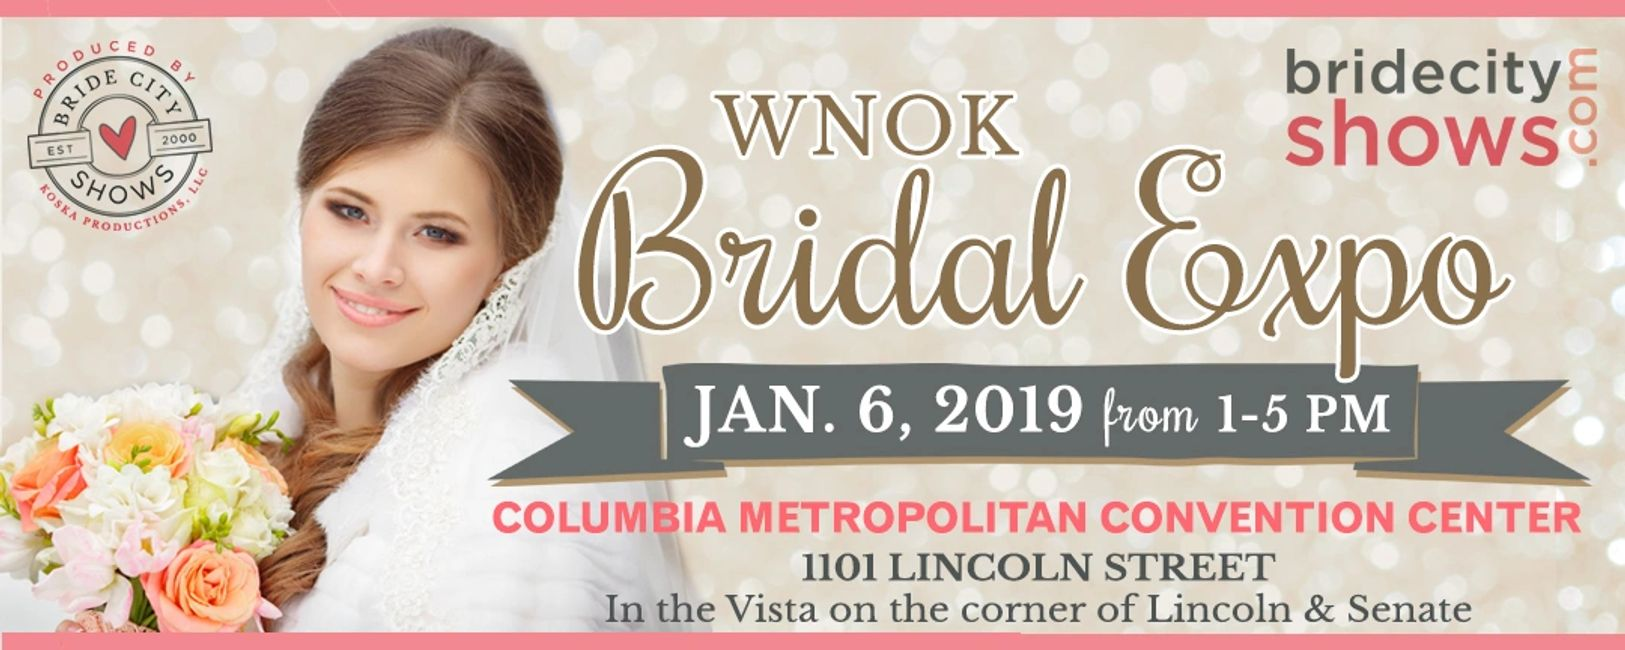 WNOK Bridal Expo, January 6, 2019